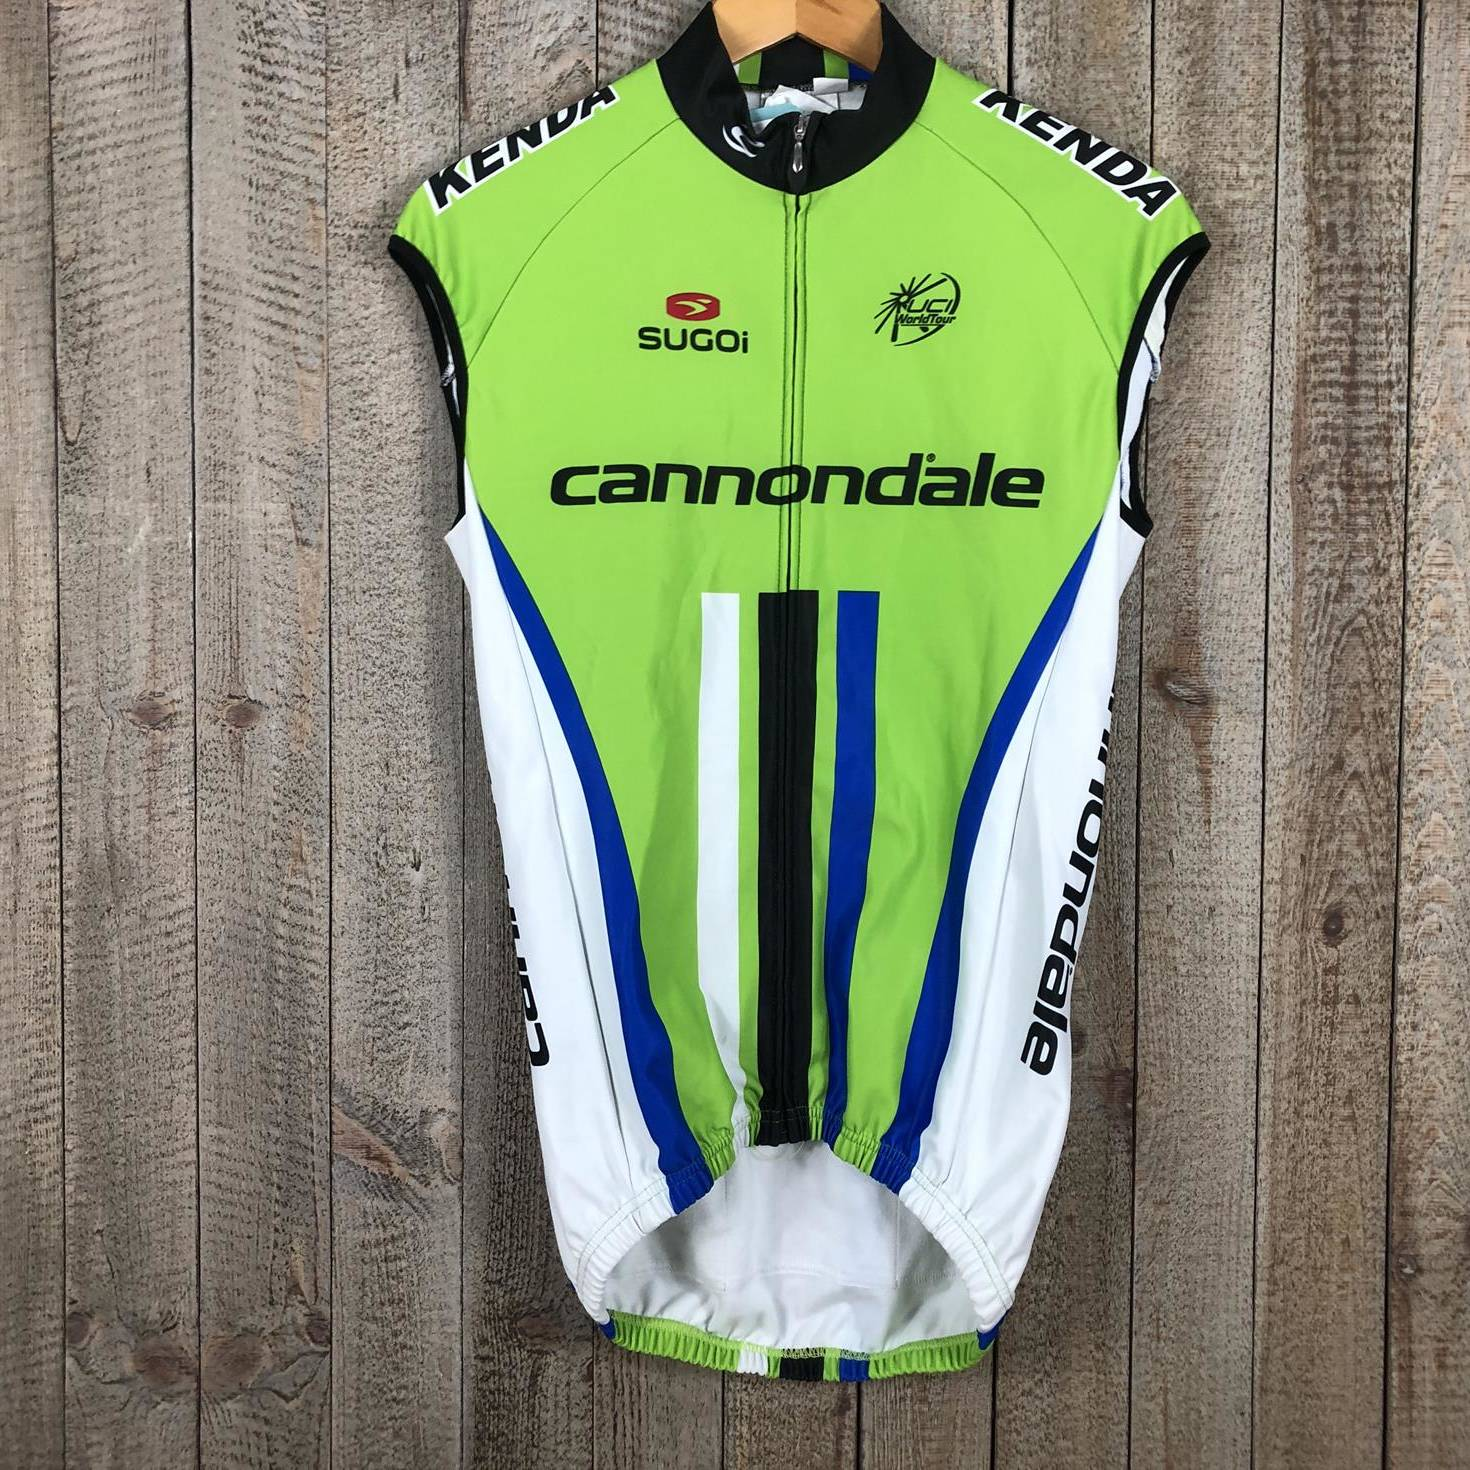 Thermal Vest - Cannondale 00002907 (1)